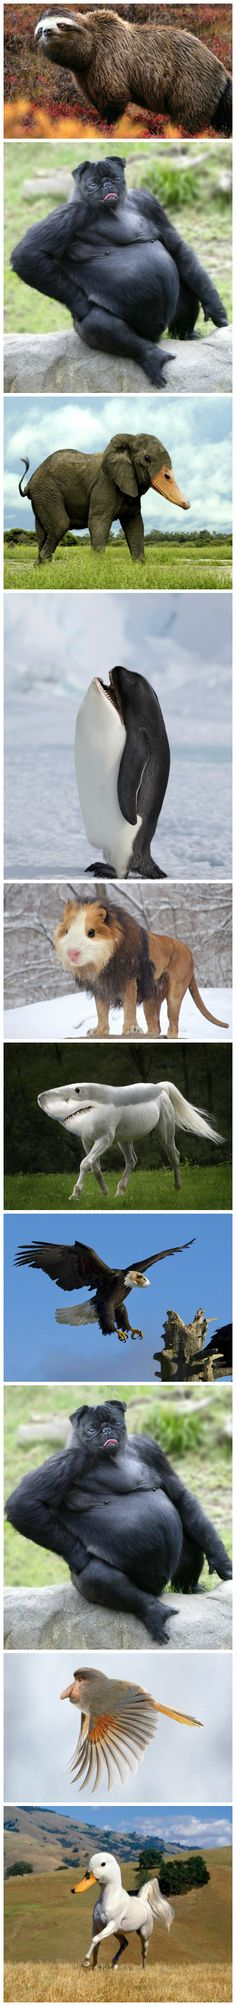 Crazy animal mashups - the dog and killer whale are the best! Animals And Pets, Baby Animals, Funny Animals, Cute Animals, Animal Mashups, Animal Memes, Funny Cute, The Funny, Photoshopped Animals